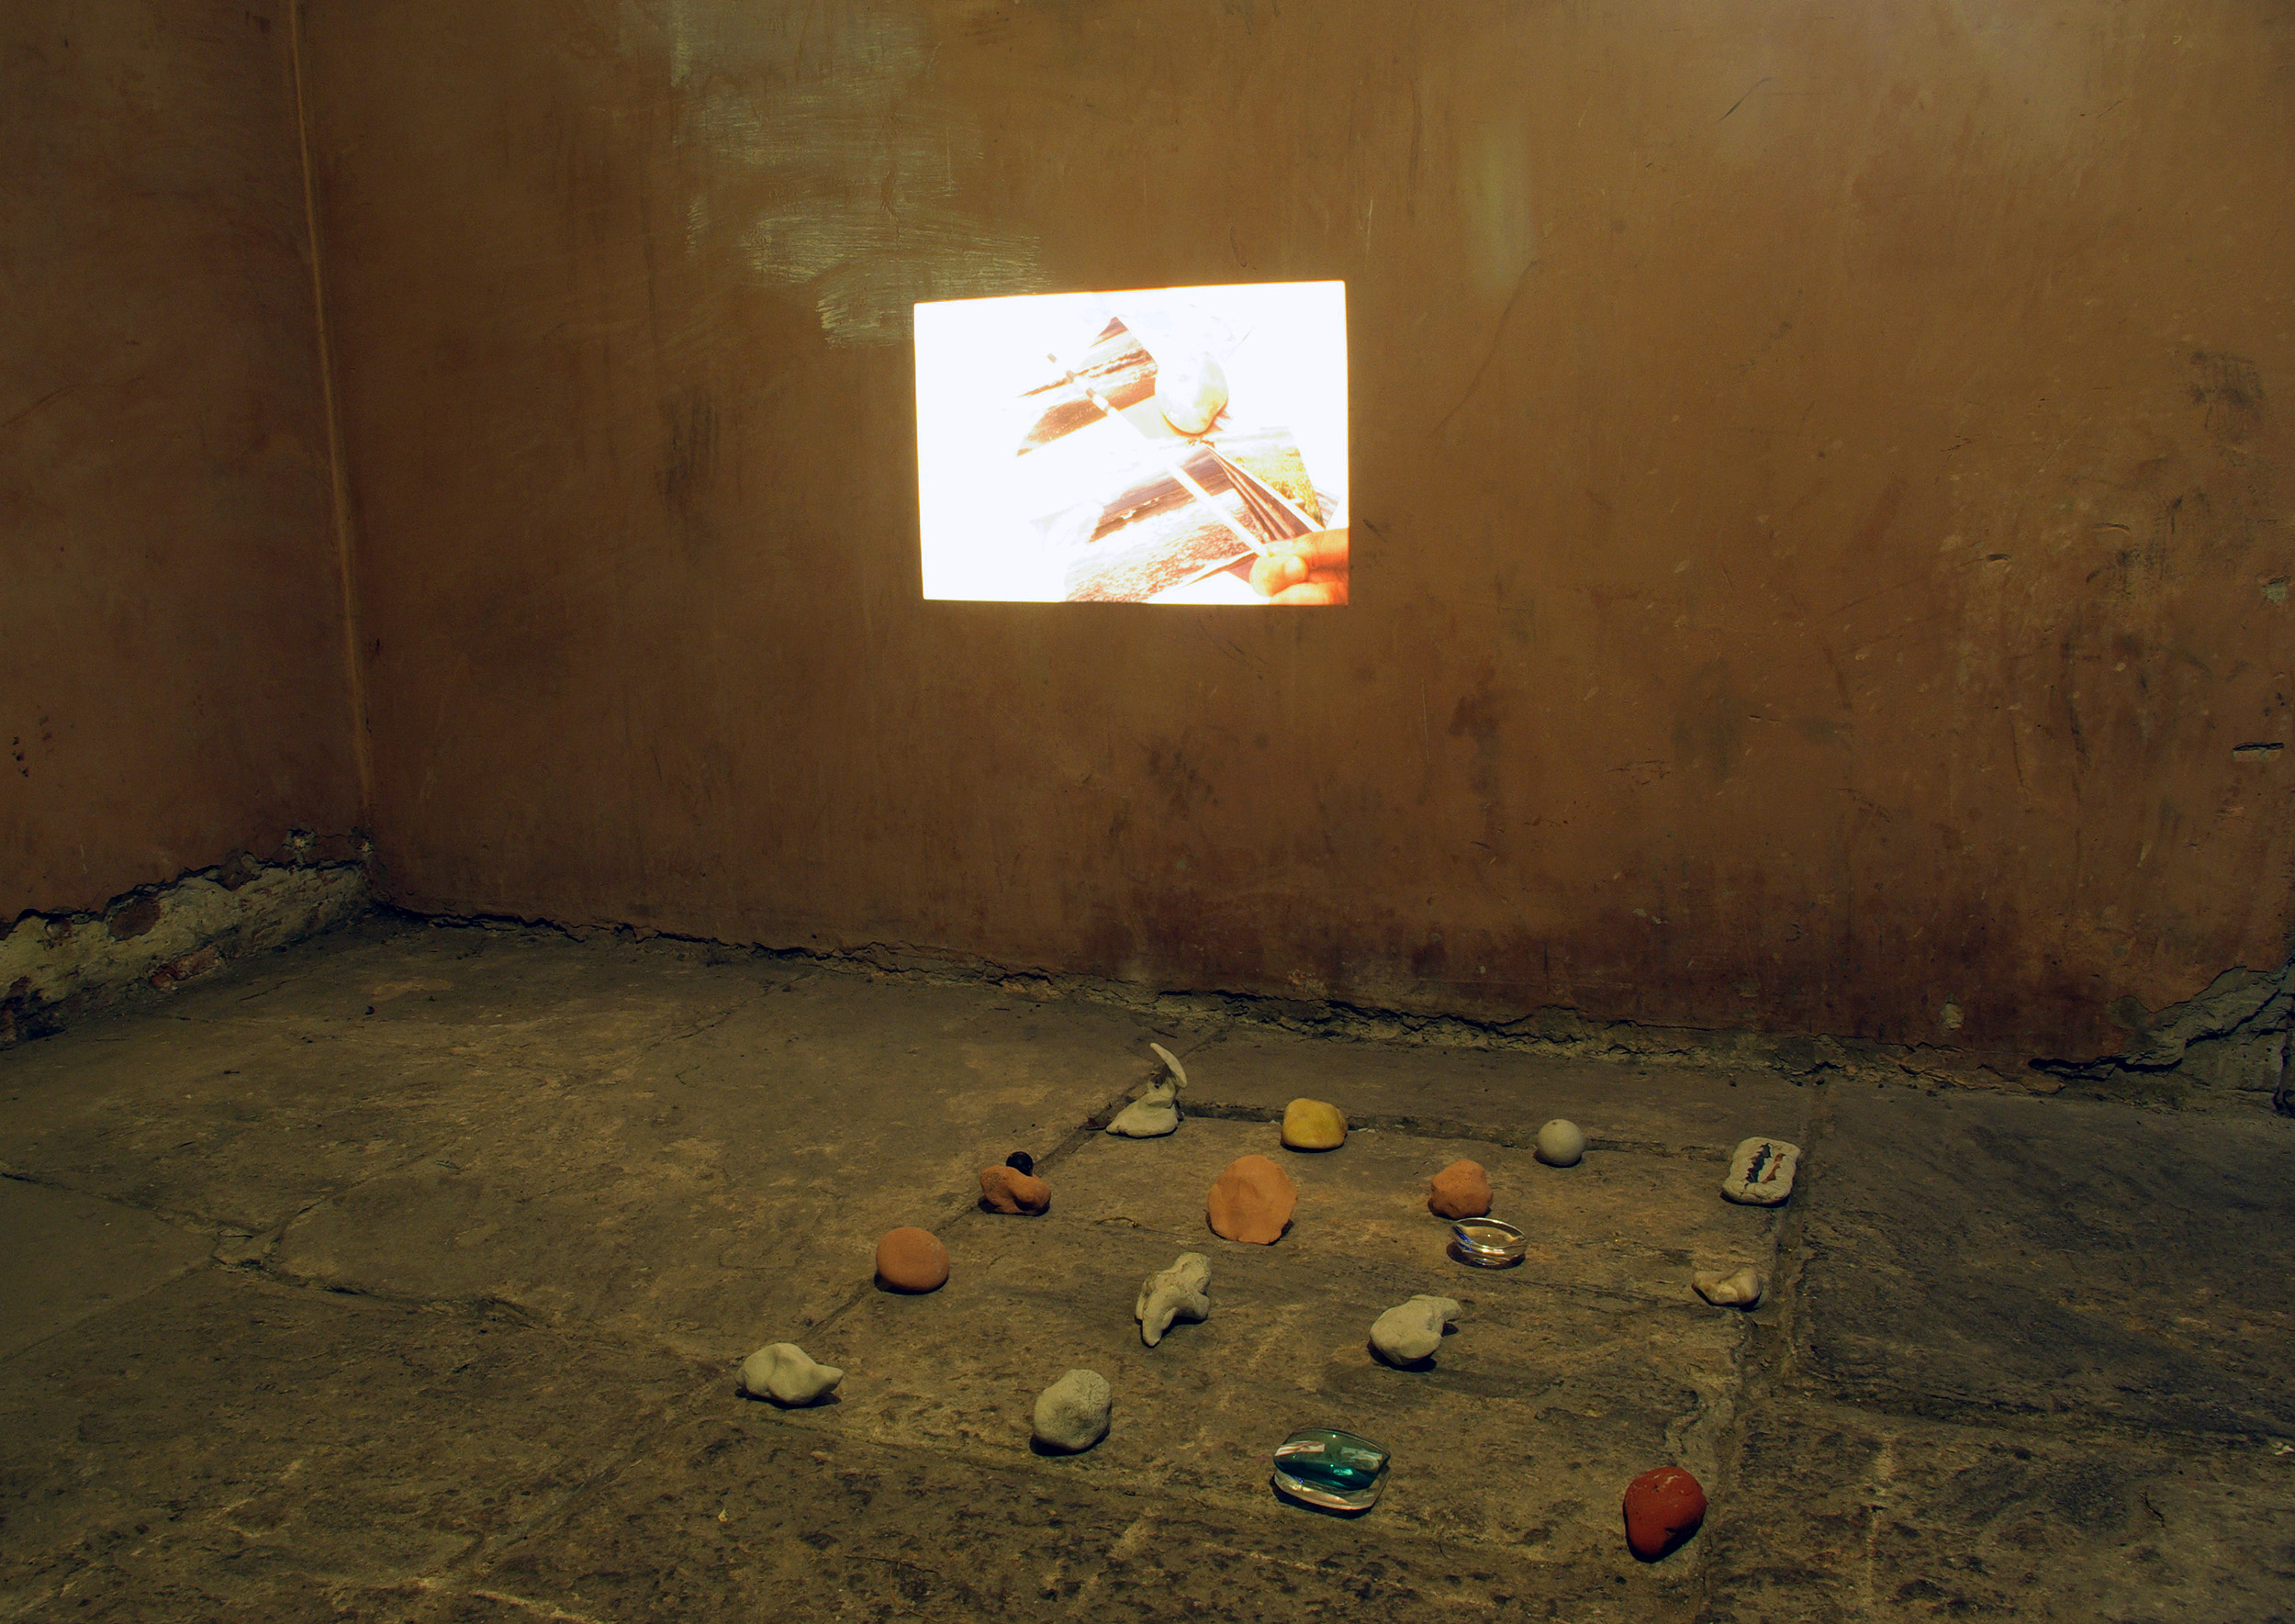 Richard Taylor artist and editor exhibiting at Basement Arts Project in Leeds, UK, 2013. Turnip prize winner and expert slide photography projection with stones and unfired clay objects.